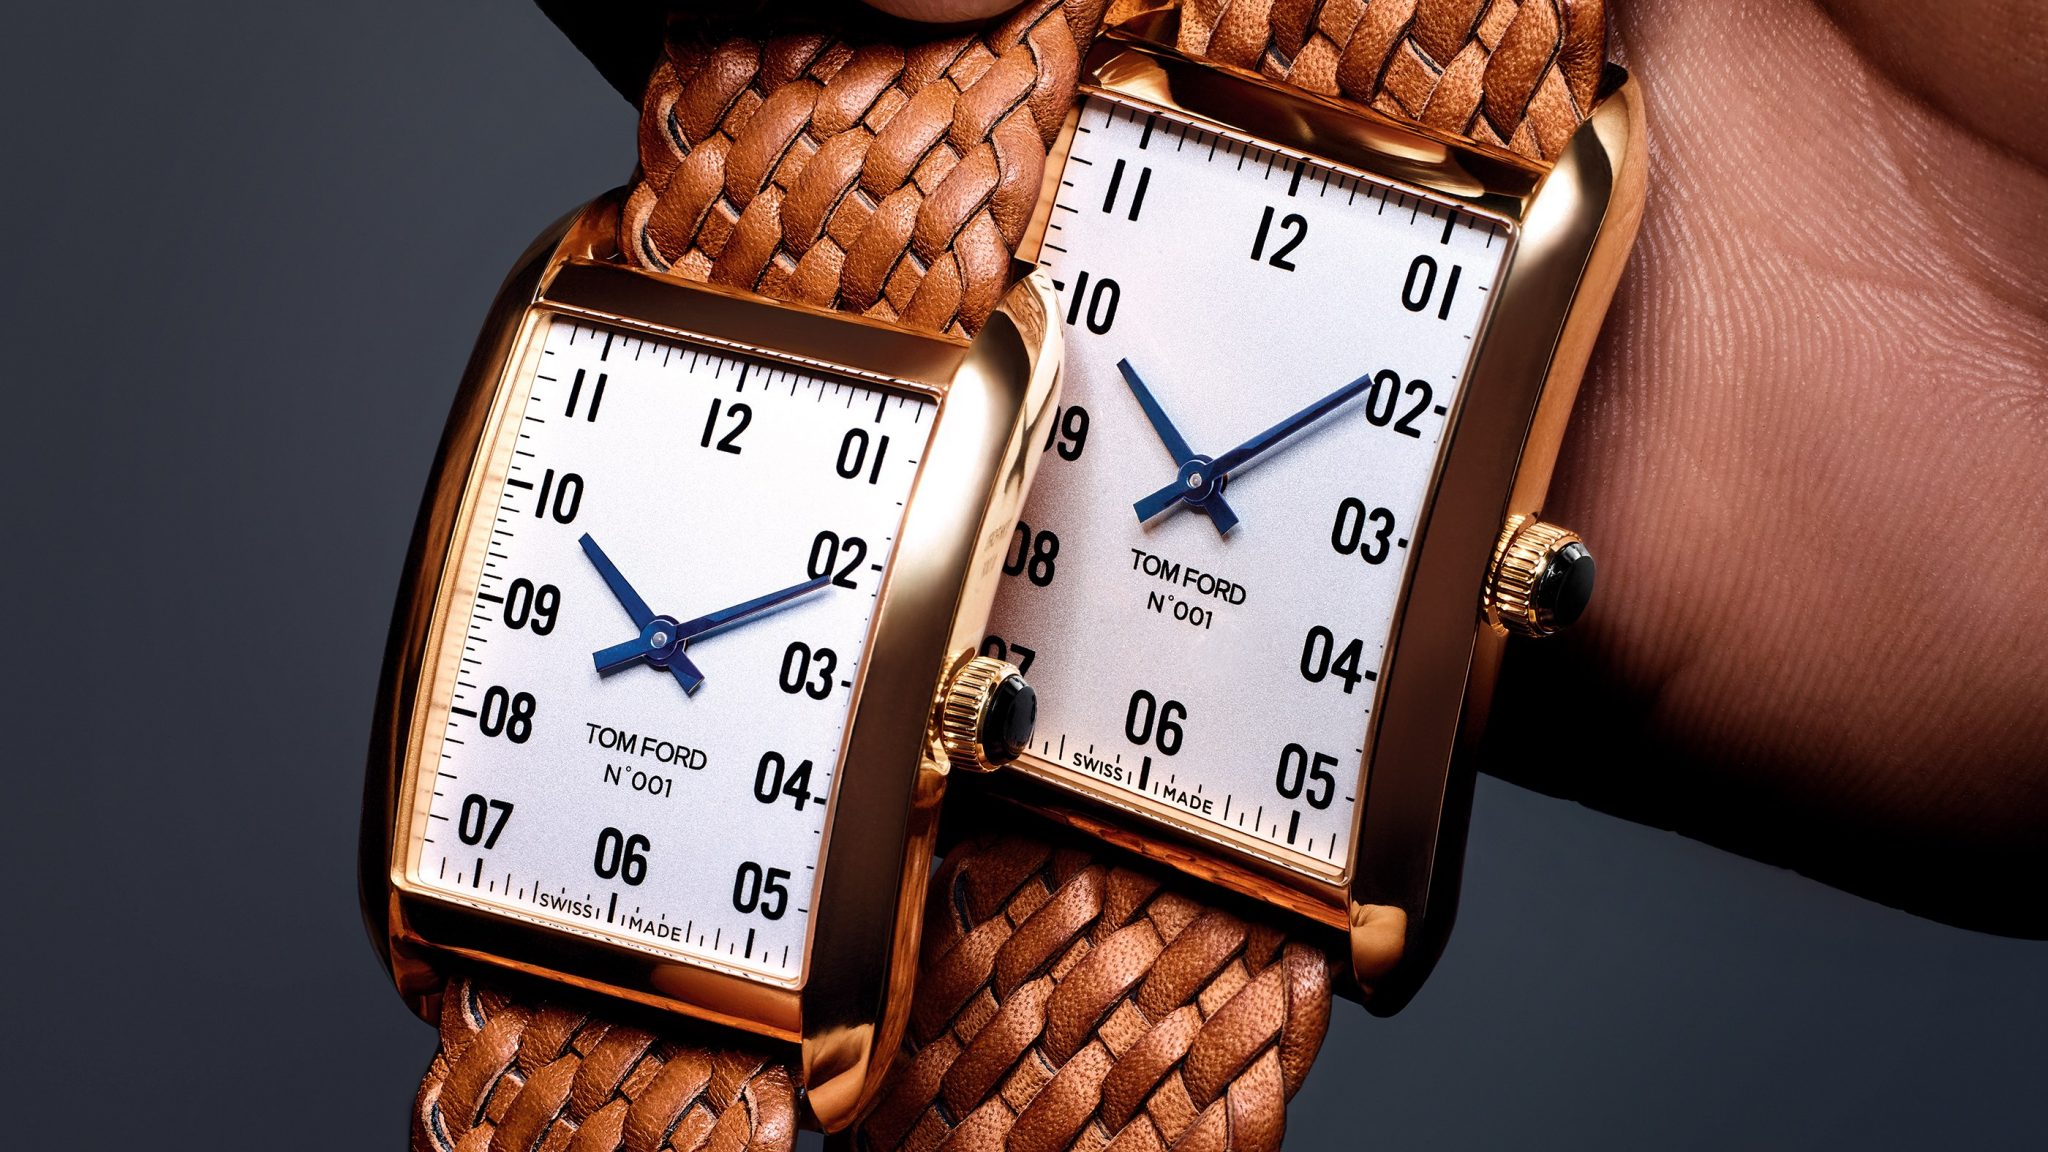 tom ford Discover the Tom Ford 001 Timepiece Collection sopcial tom ford watches